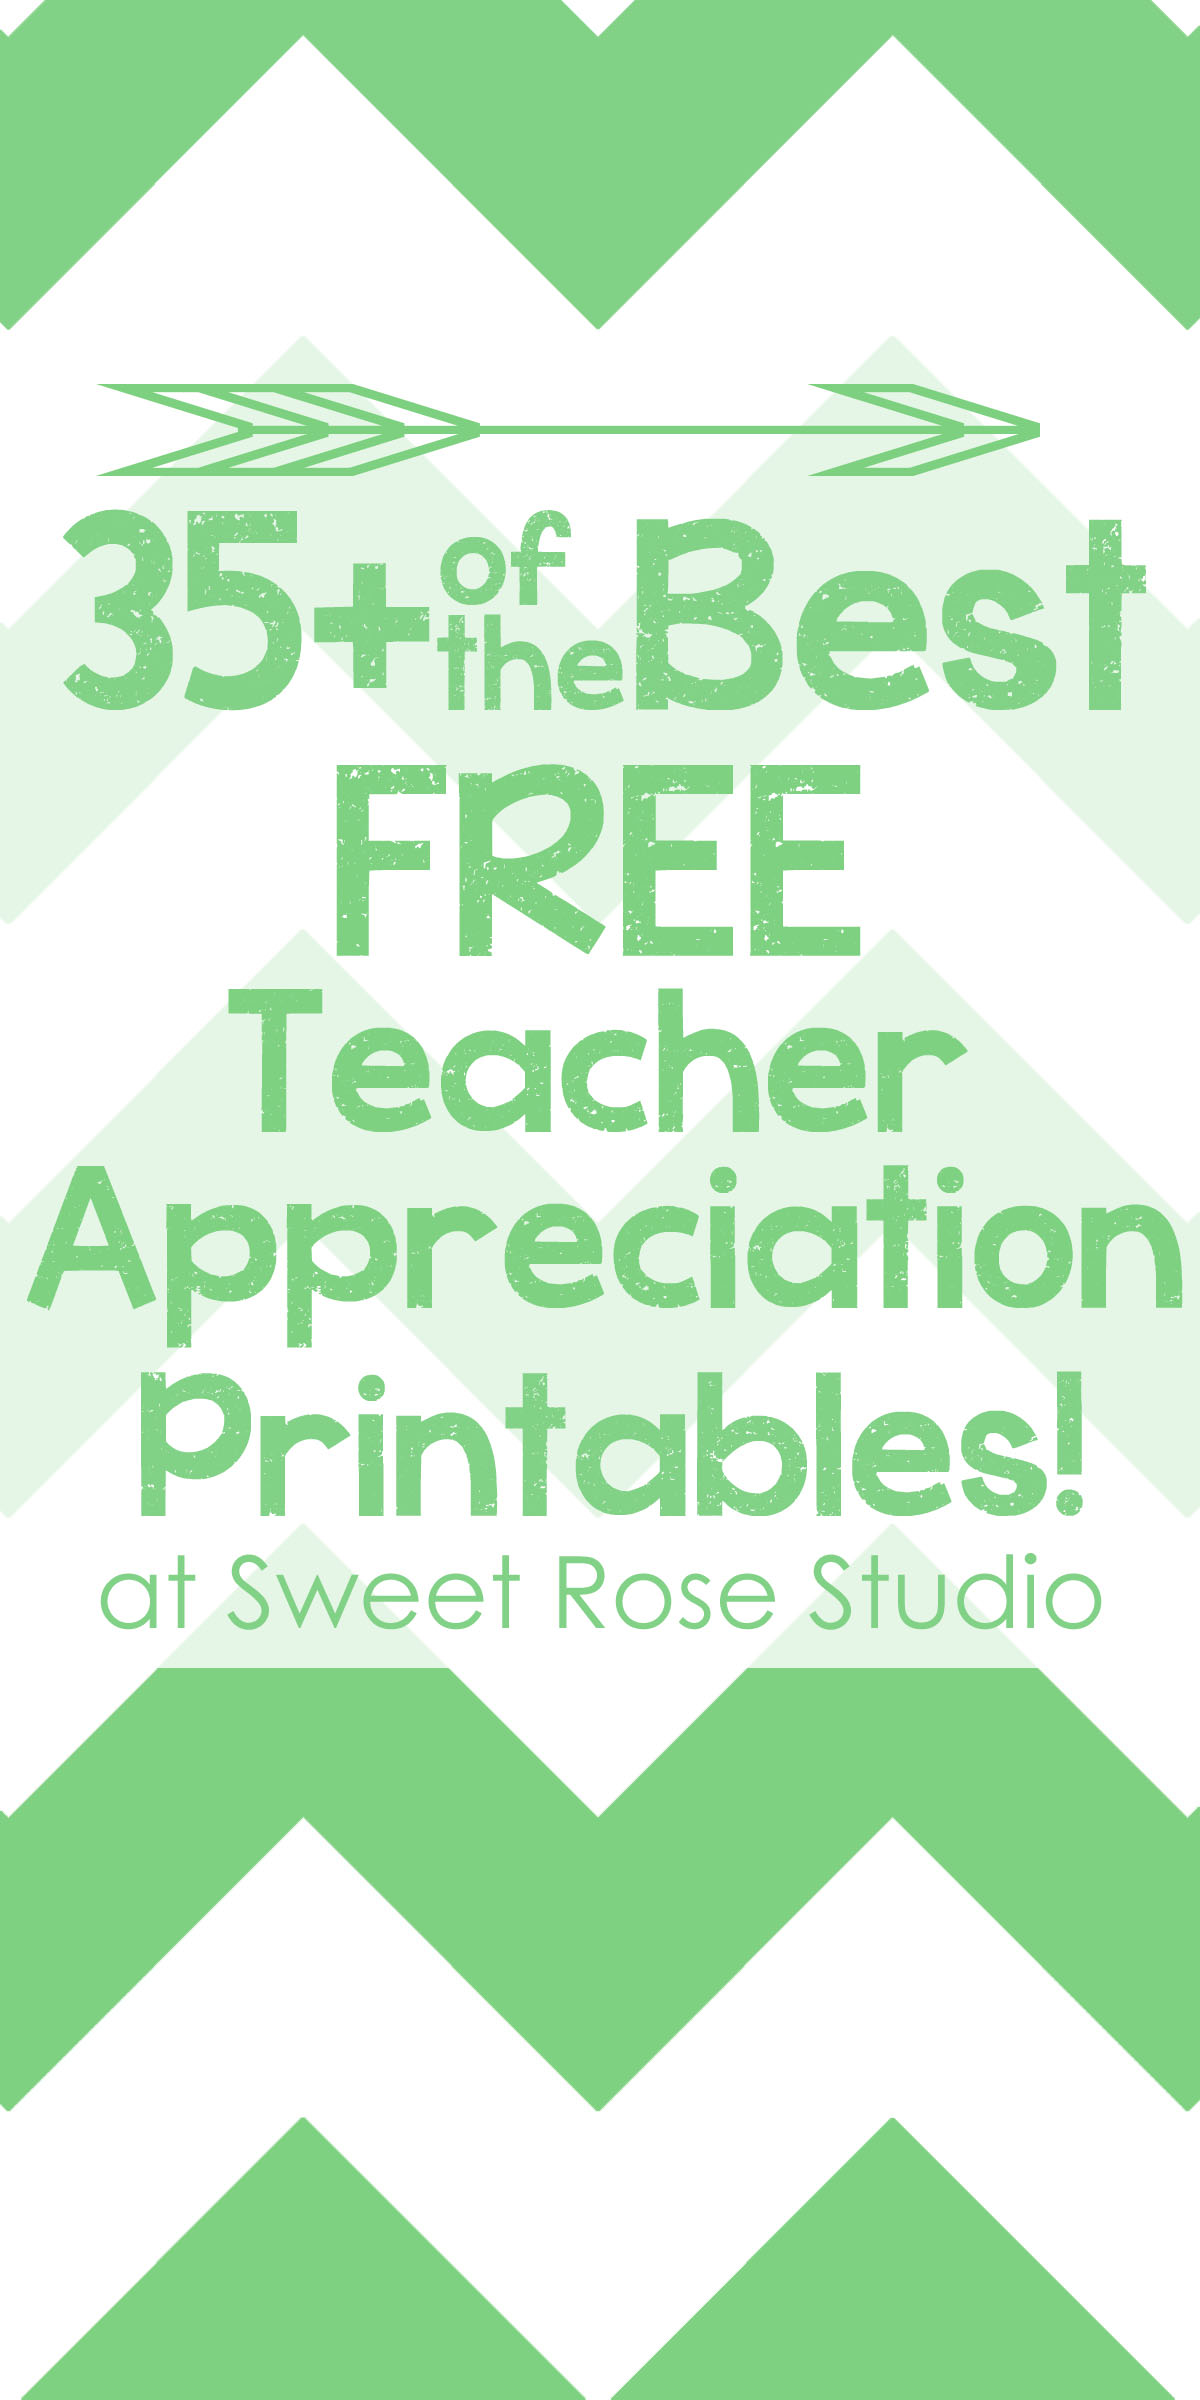 This is an image of Gratifying Free Printable Worksheets for Teachers